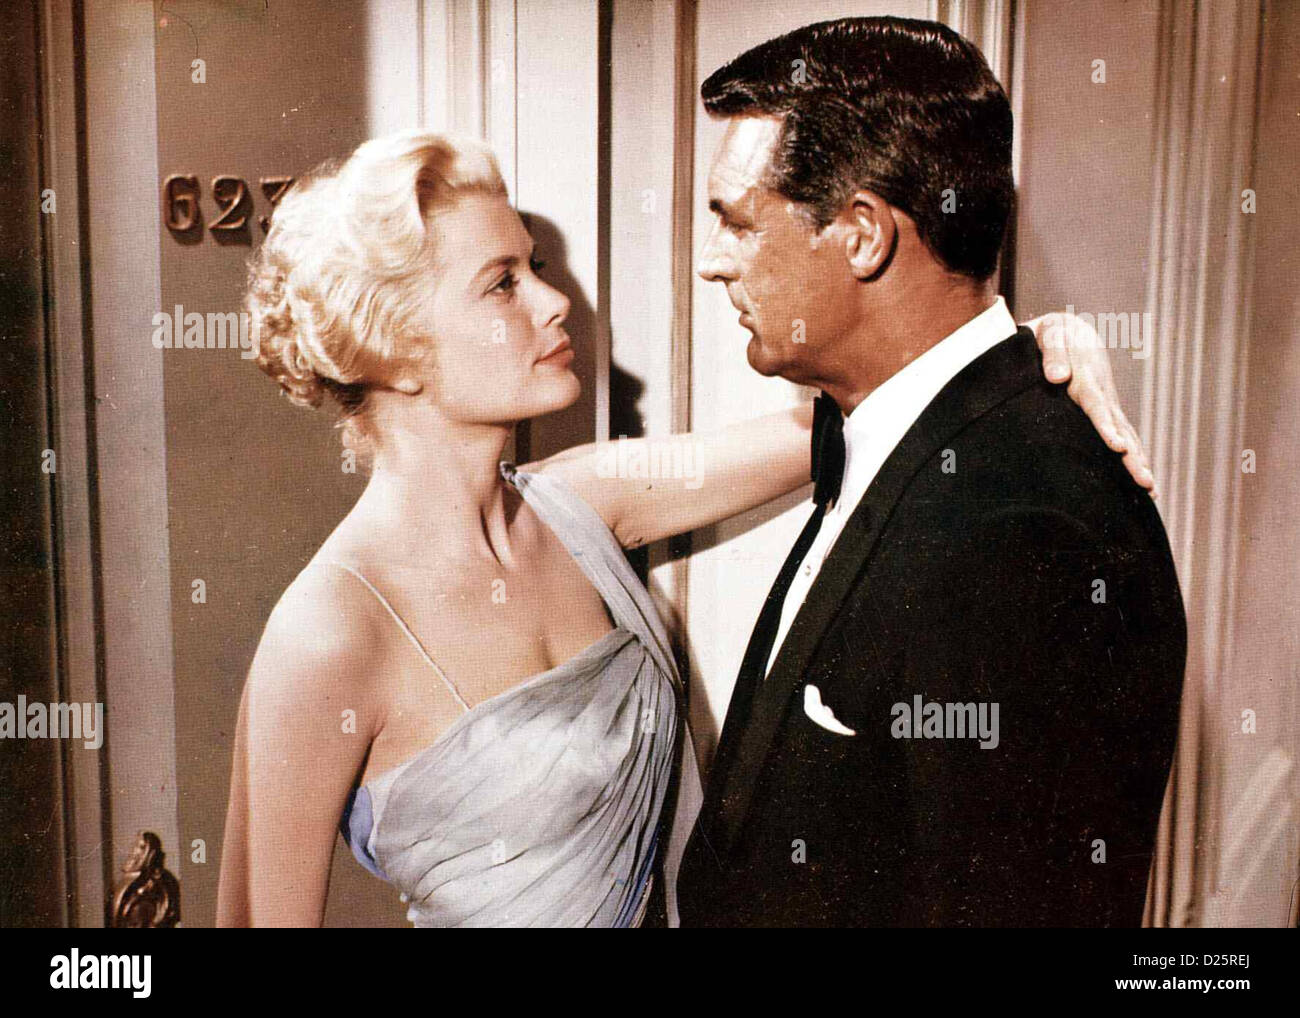 ueber den daechern von nizza to catch thief grace kelly cary grant stock photo royalty free. Black Bedroom Furniture Sets. Home Design Ideas